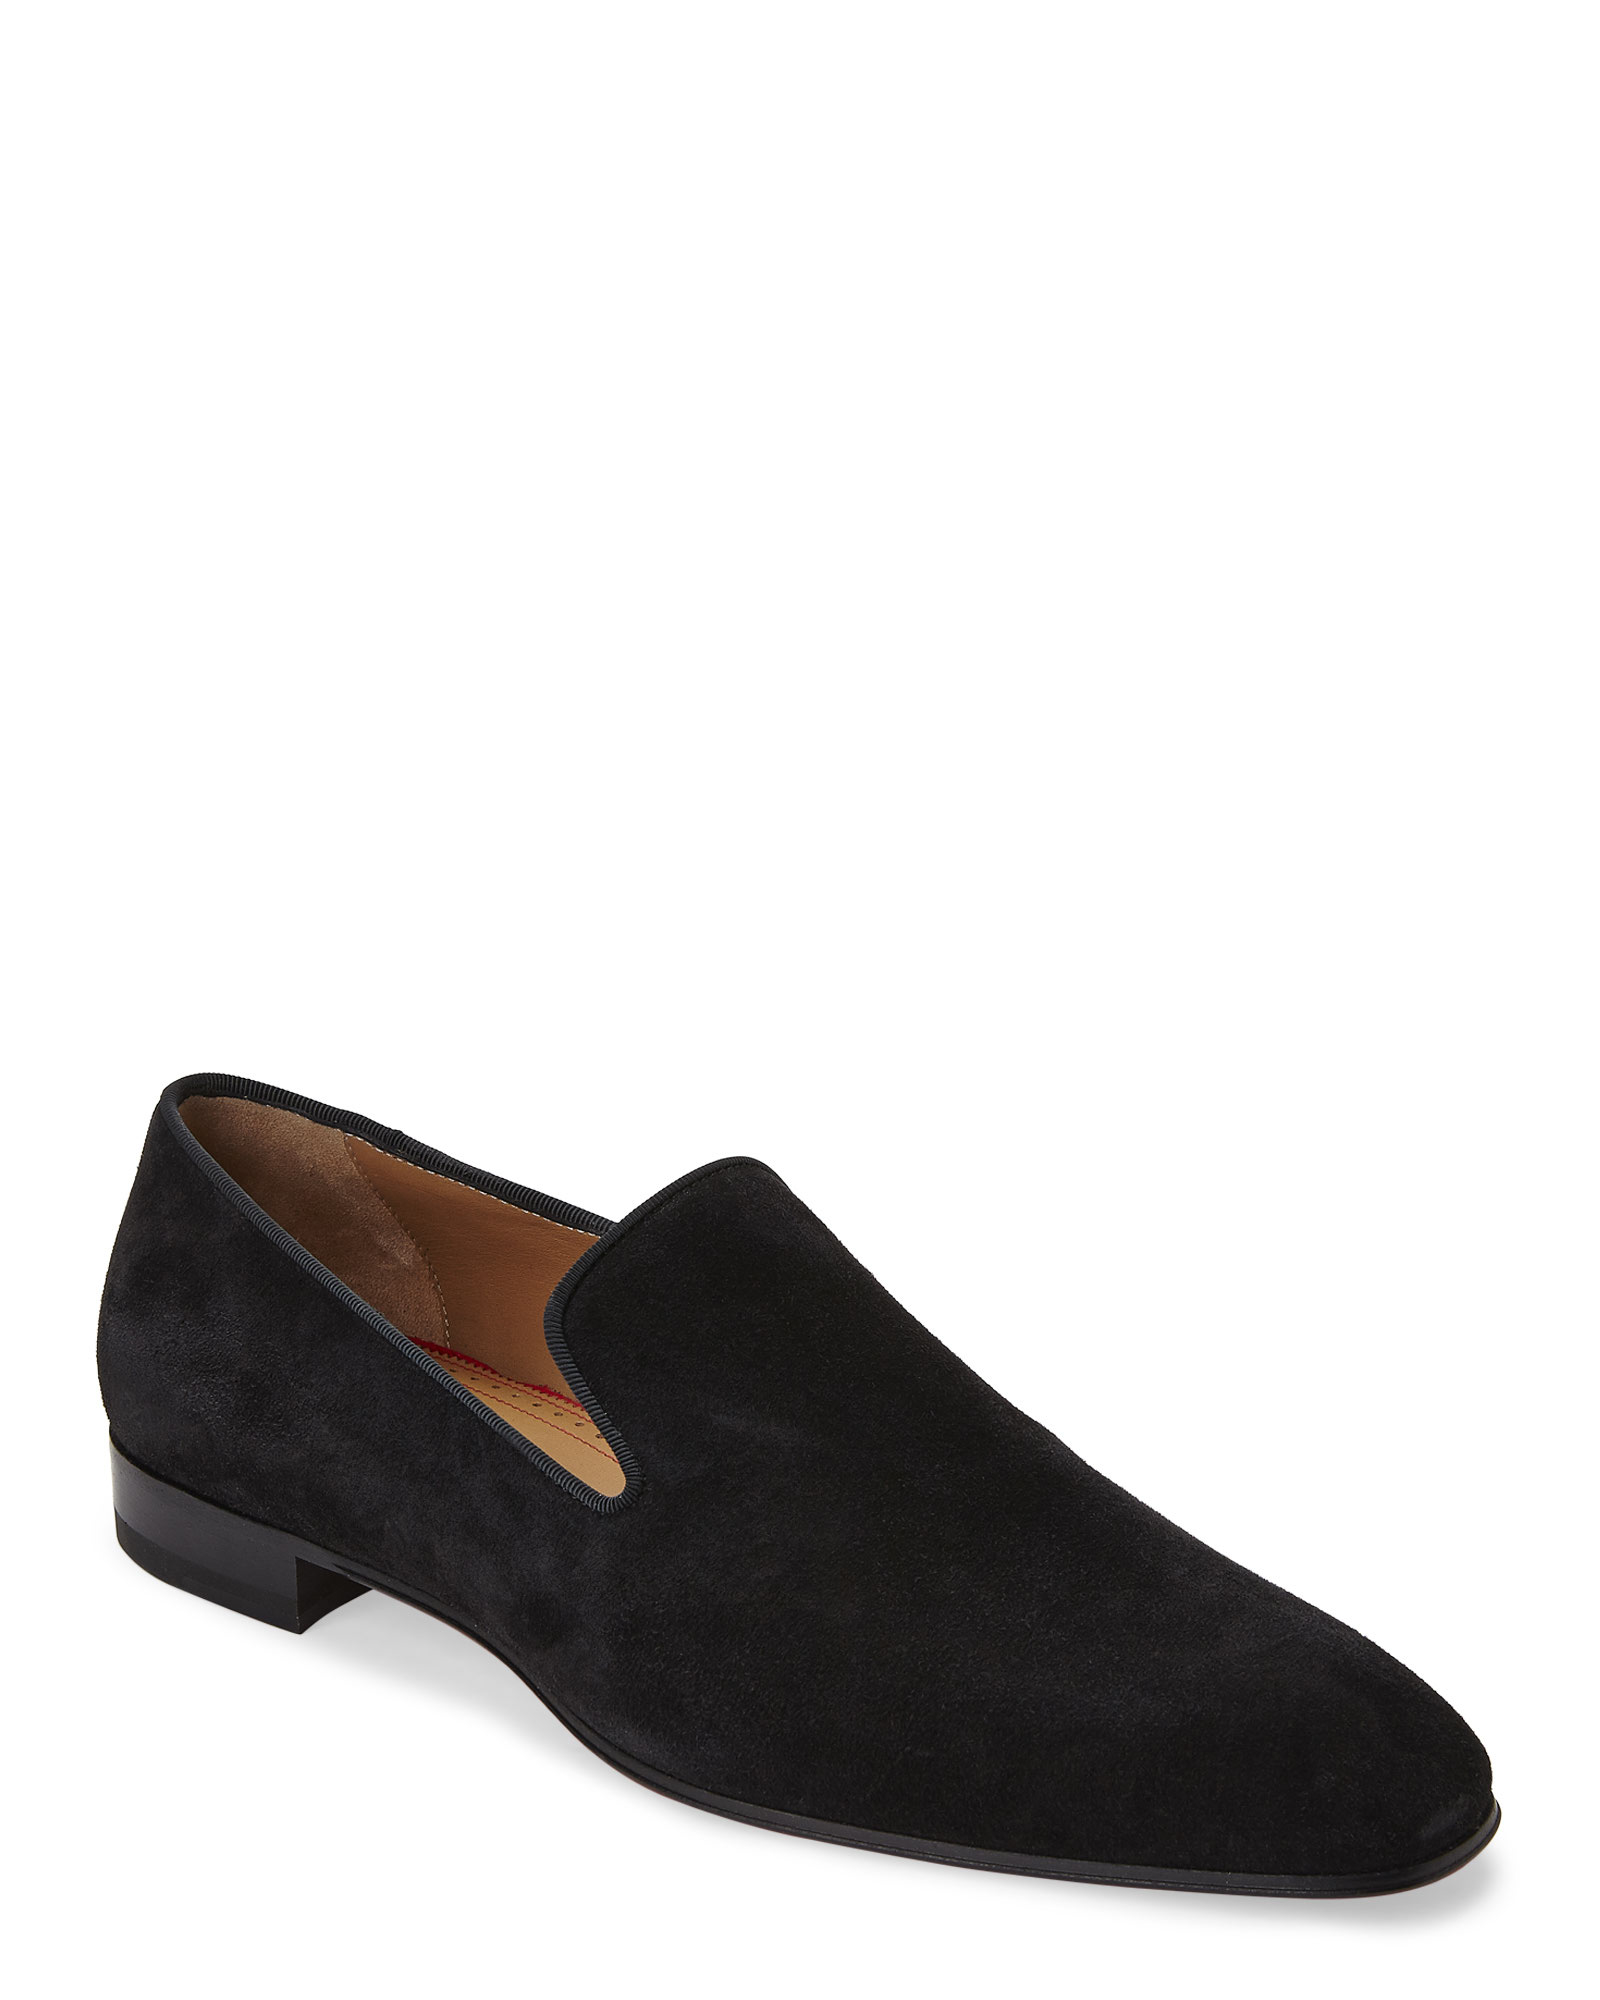 4a8b2c29ec48 Lyst - Christian Louboutin Black Dandelion Smoking Loafers in Black ...